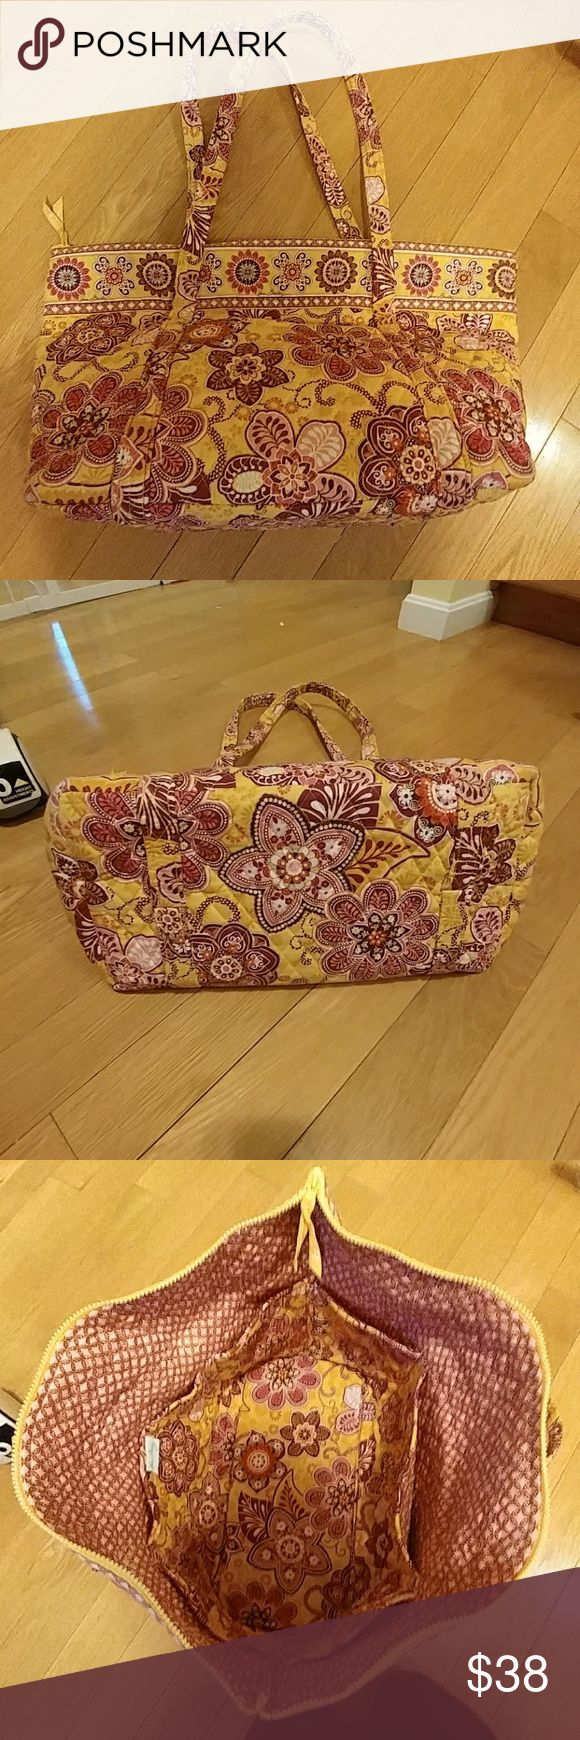 Large Vera Bradley travel bag Beautiful print! Like new condition. Pocket on front. 6 interior pockets to stay organized. Vera Bradley Bags